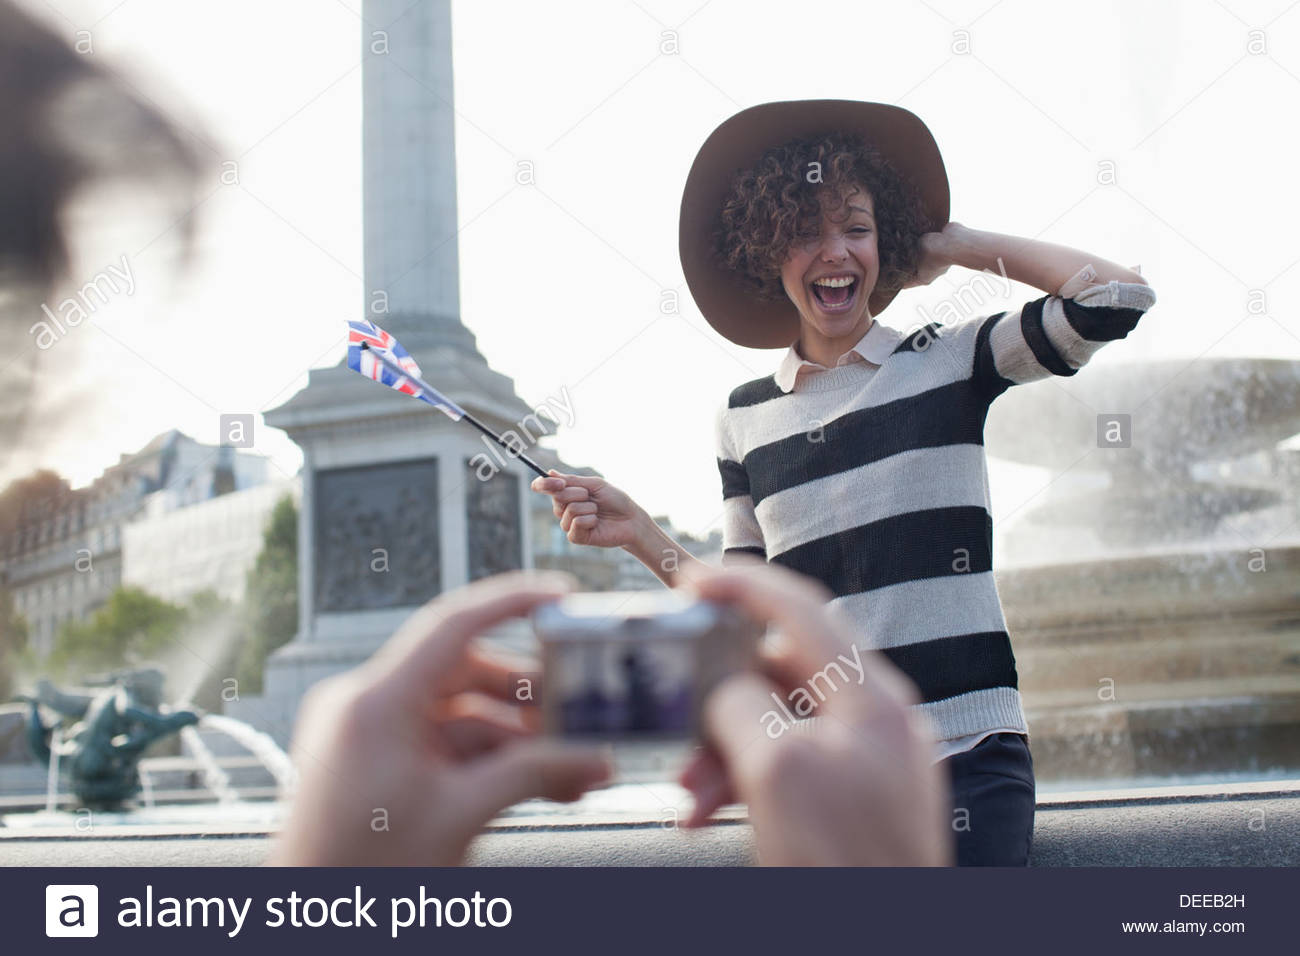 Man with digital camera taking photograph of happy woman with British flag in front of fountain - Stock Image